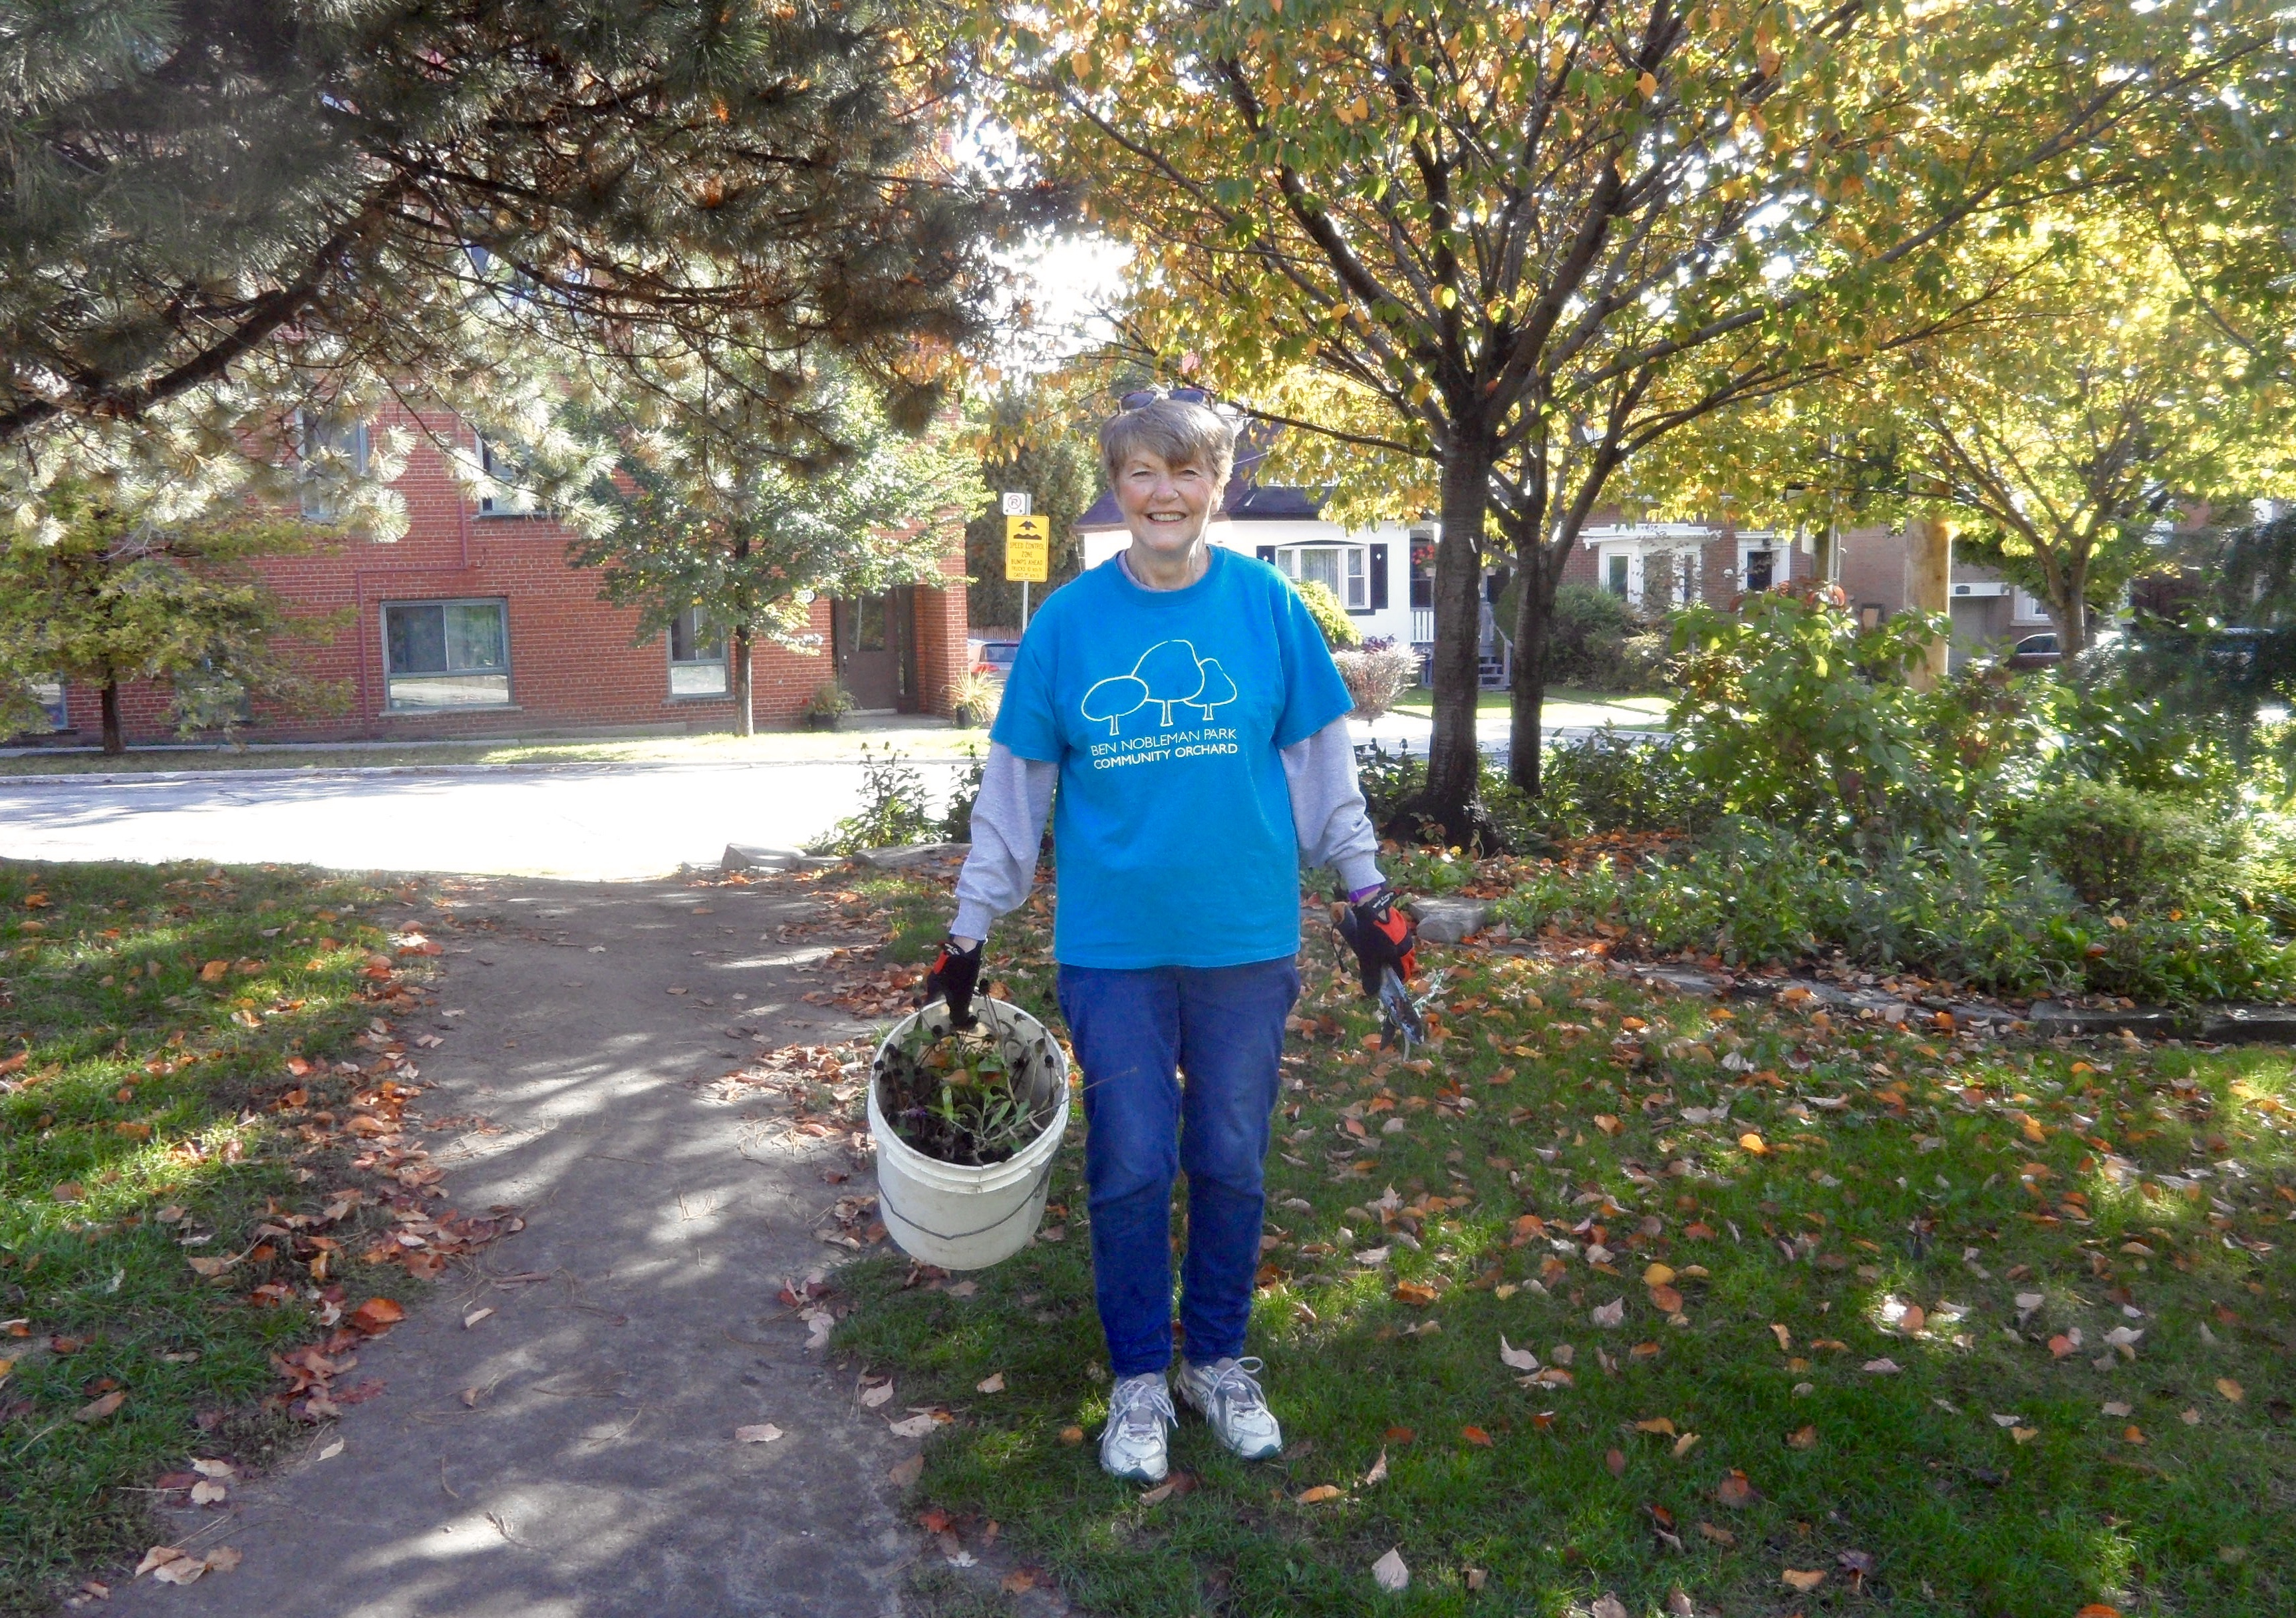 Lynn giving thanks for fruit trees in Ben Nobleman Park Community Orchard